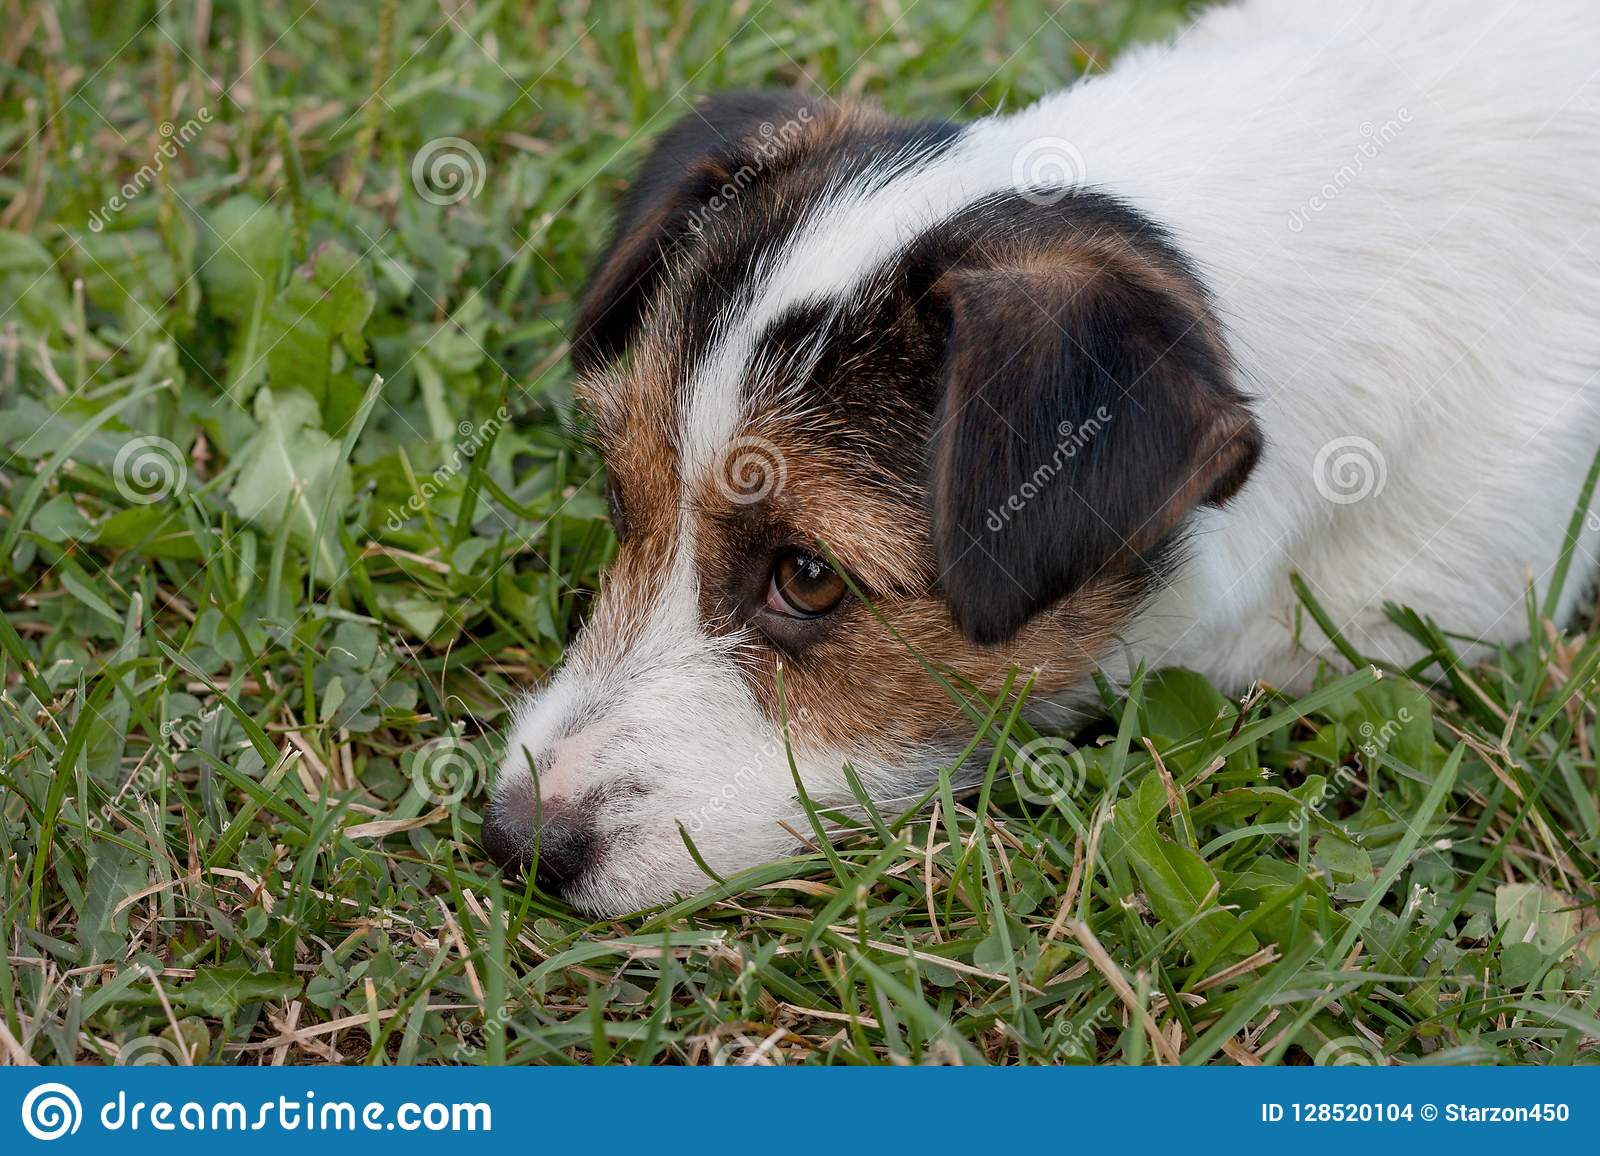 Cute jack russell terrier puppy with hazel eyes close up. Pet animals.